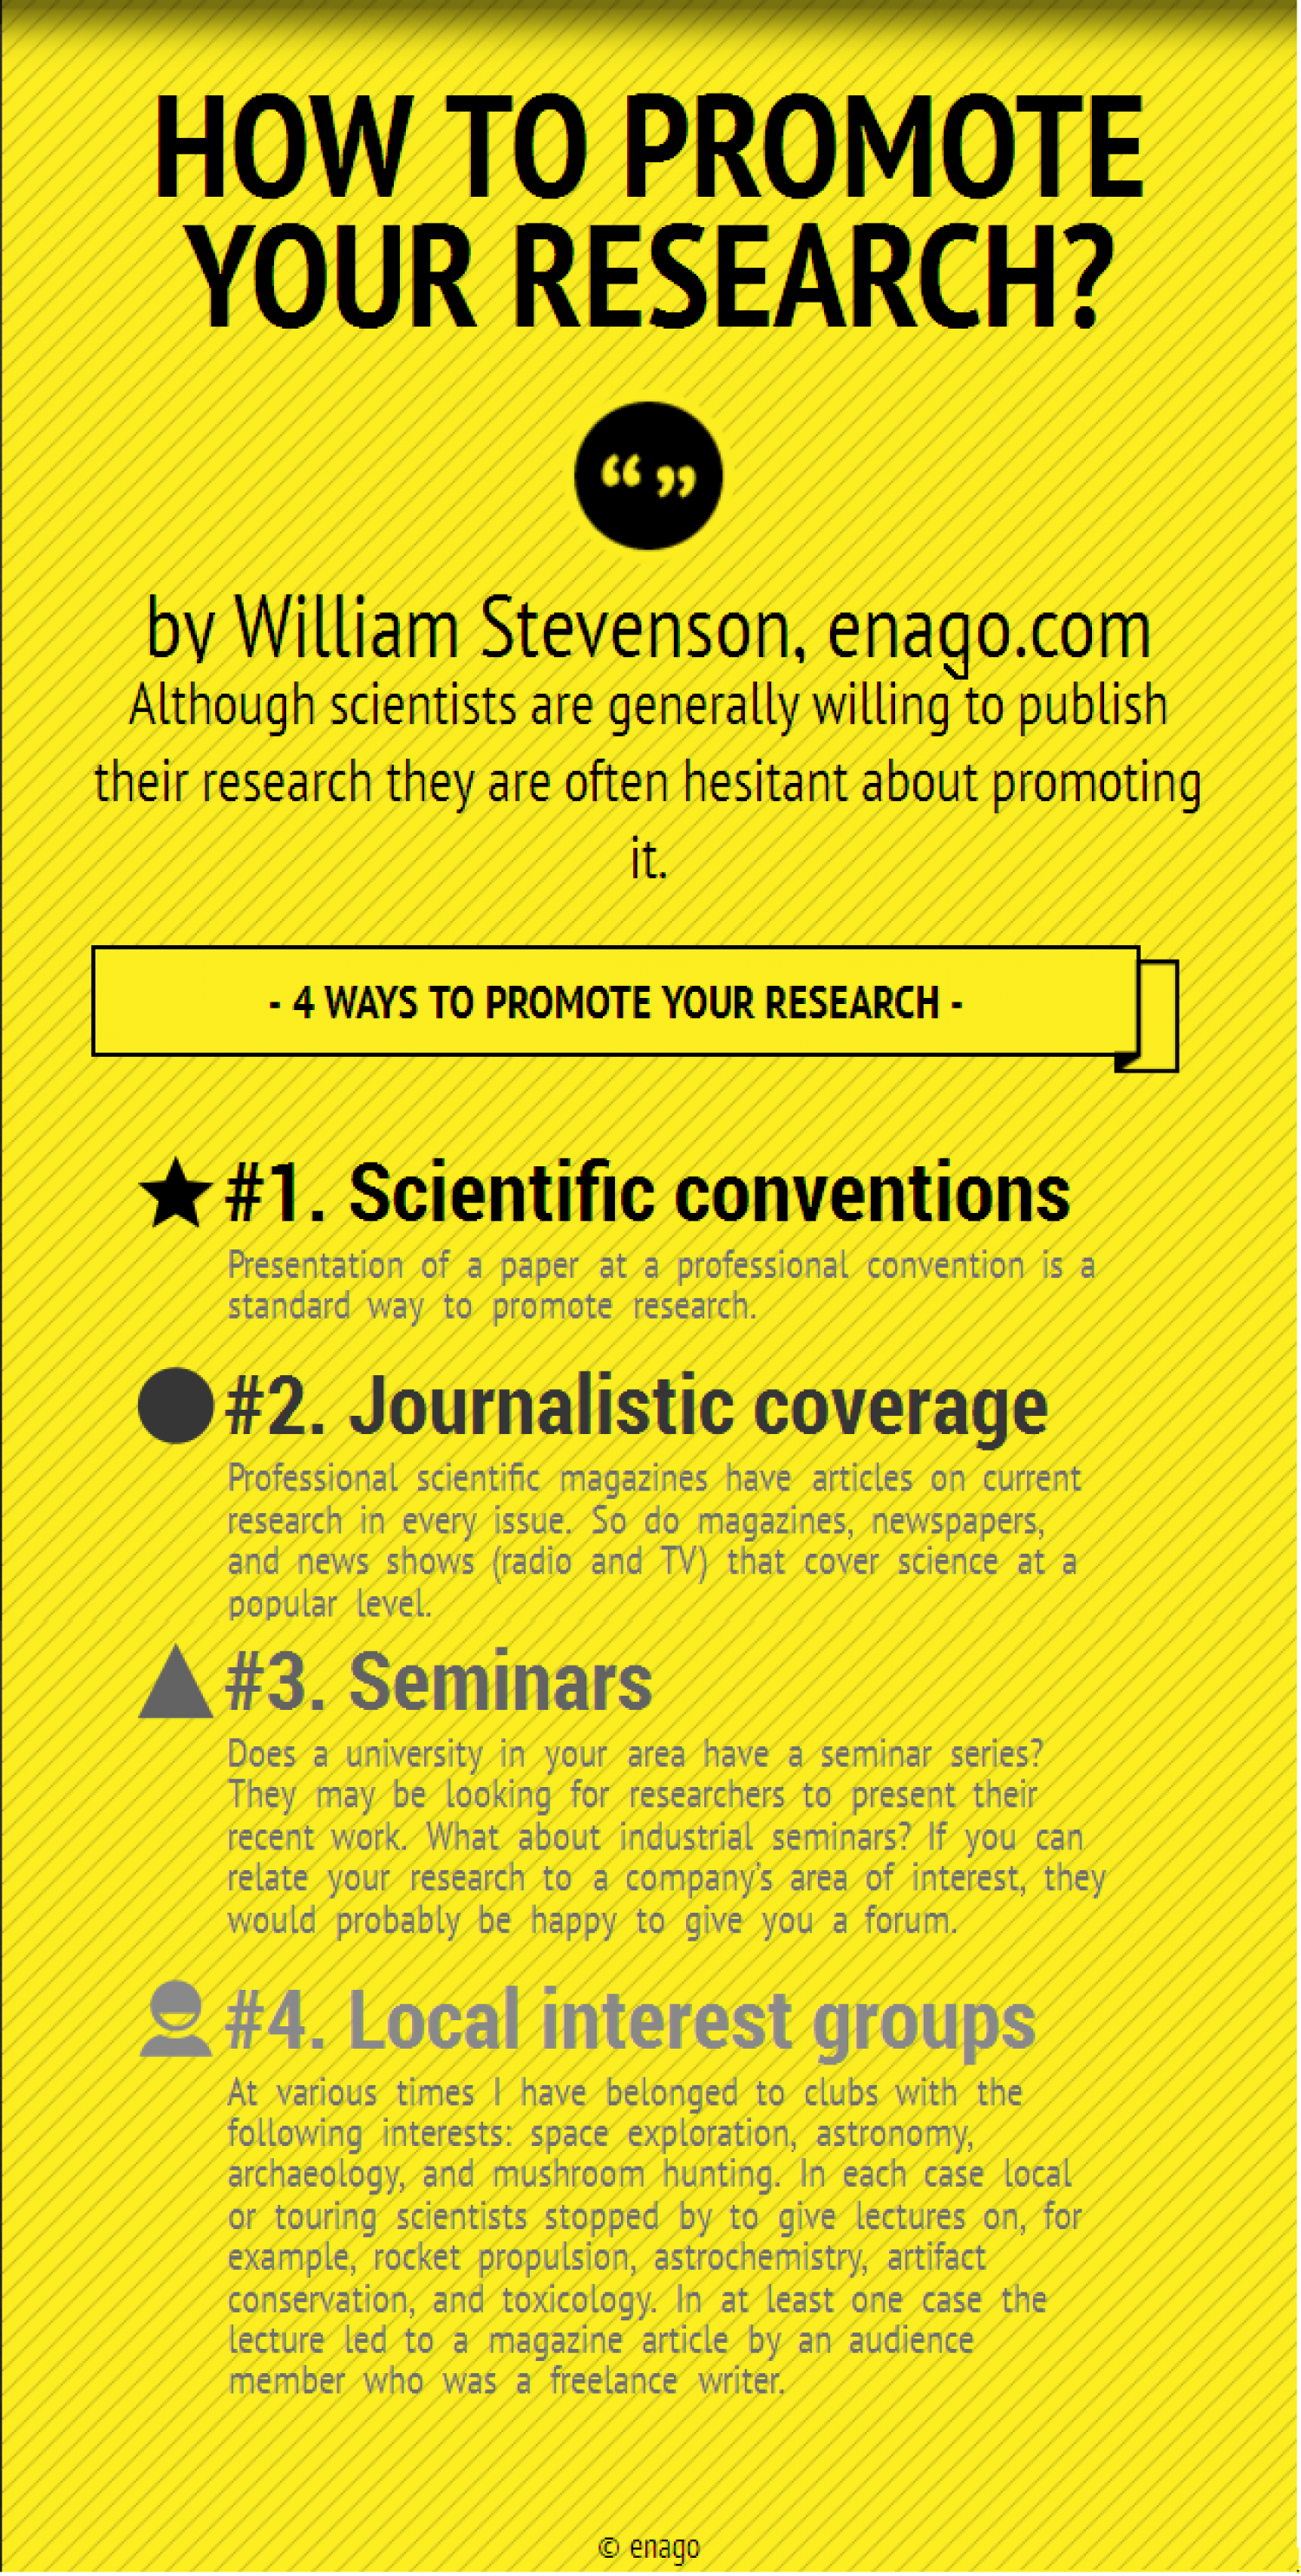 How to Promote Your Research? Infographic